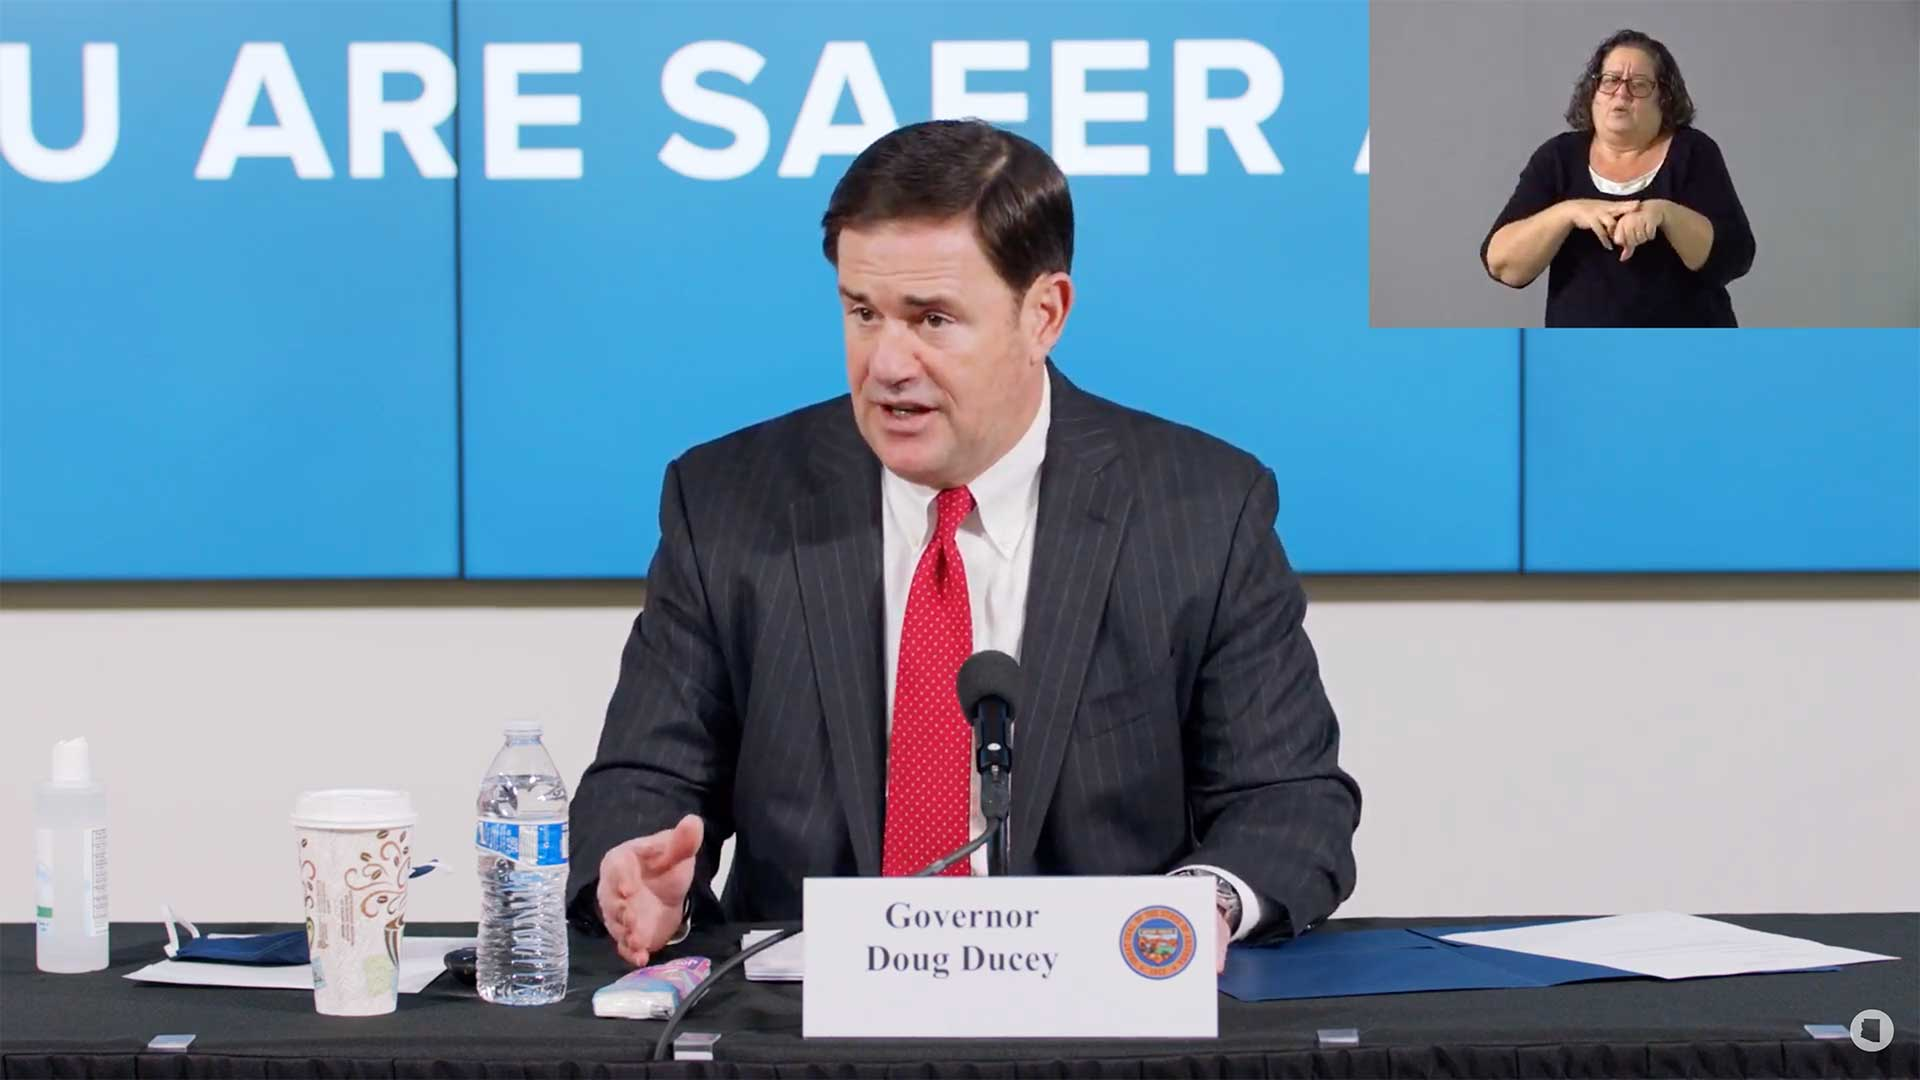 Gov. Doug Ducey at July 30 update on Arizona's response to the COVID-19 pandemic.